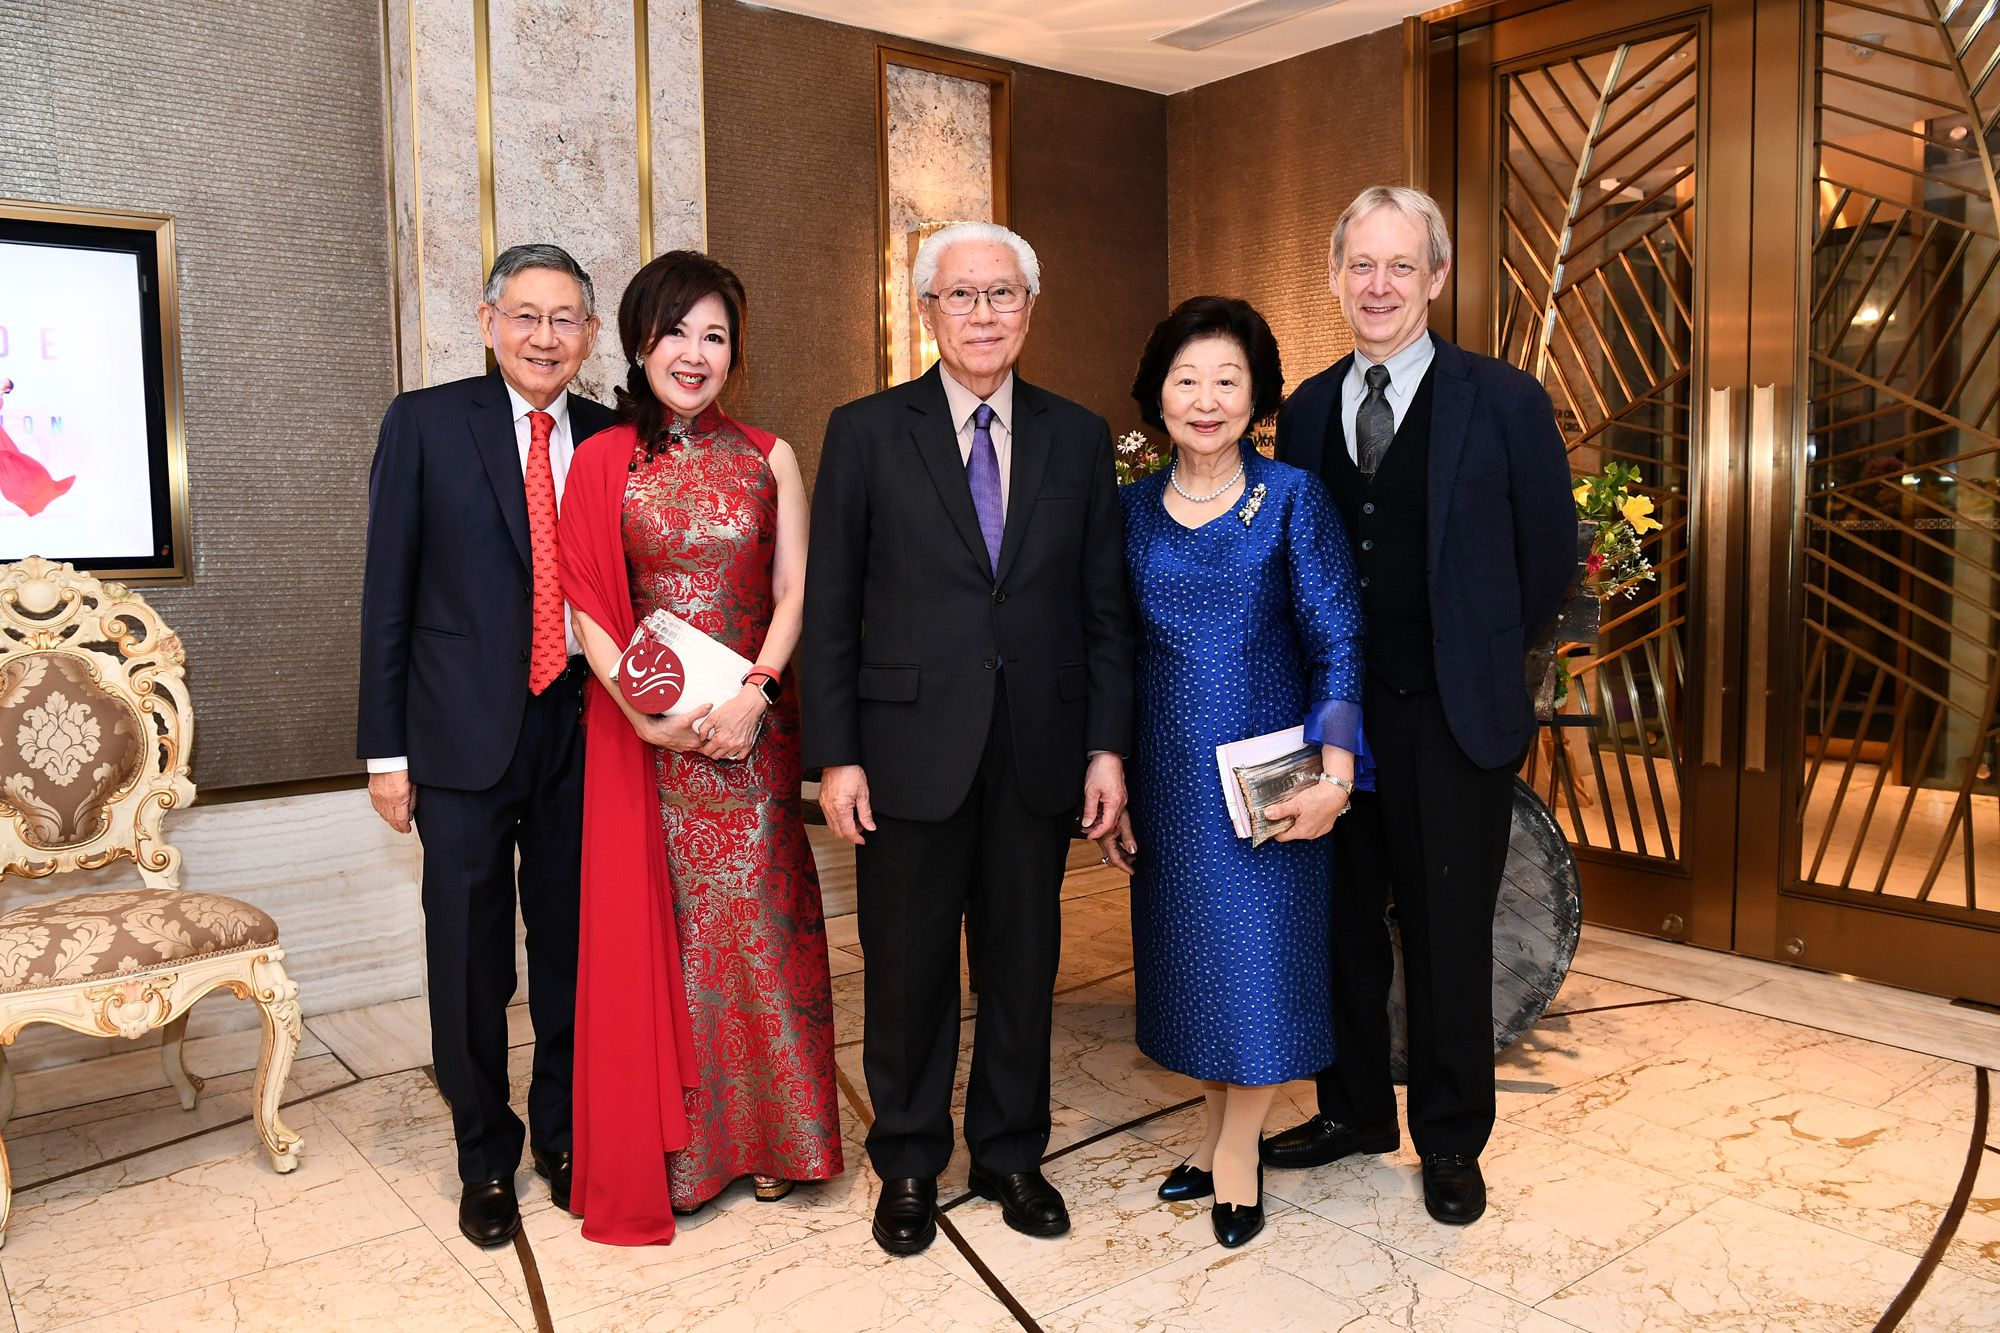 Michael Hwang, Laura Hwang, Tony Tan Keng Yam, Mary Tan, Janek Schergen